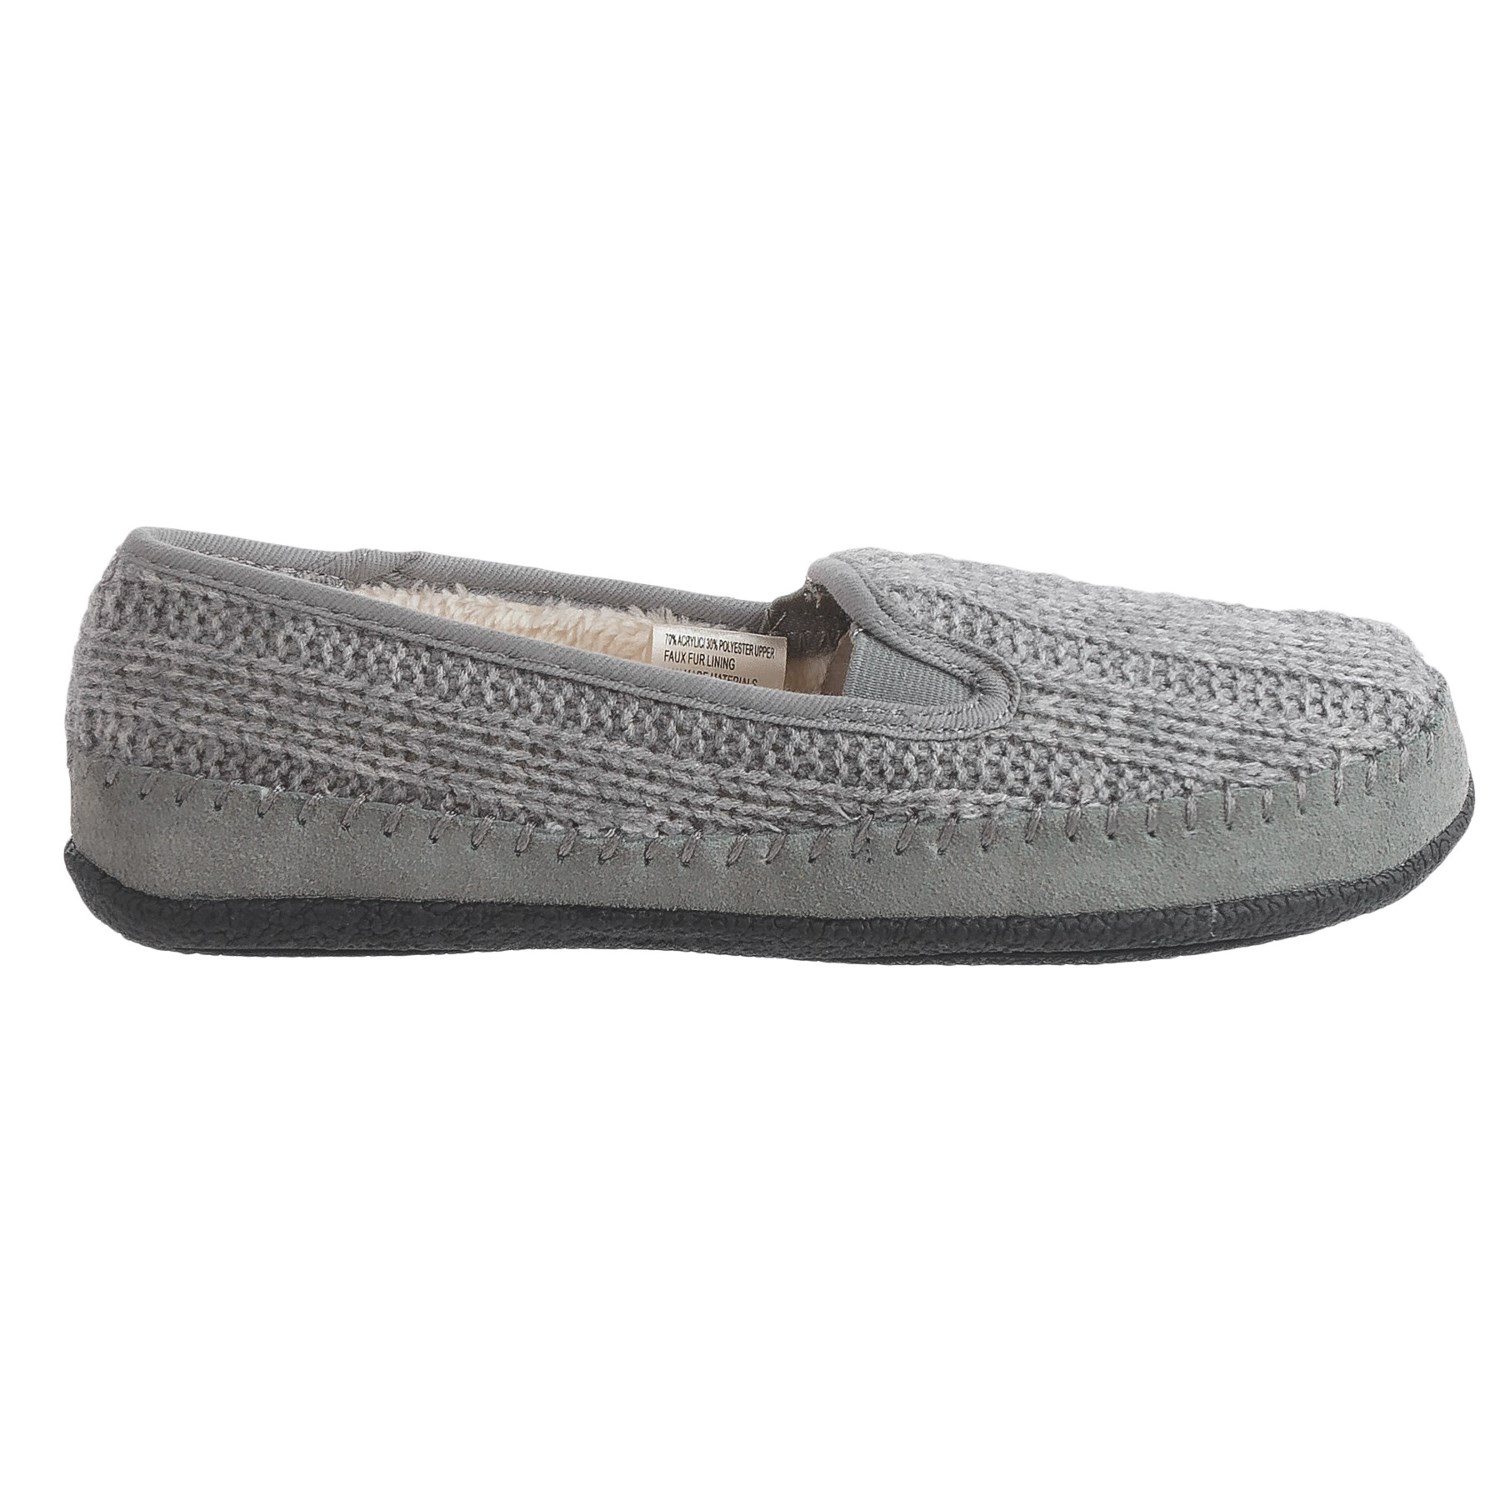 daniel green gildy slippers (for women) - save 70%